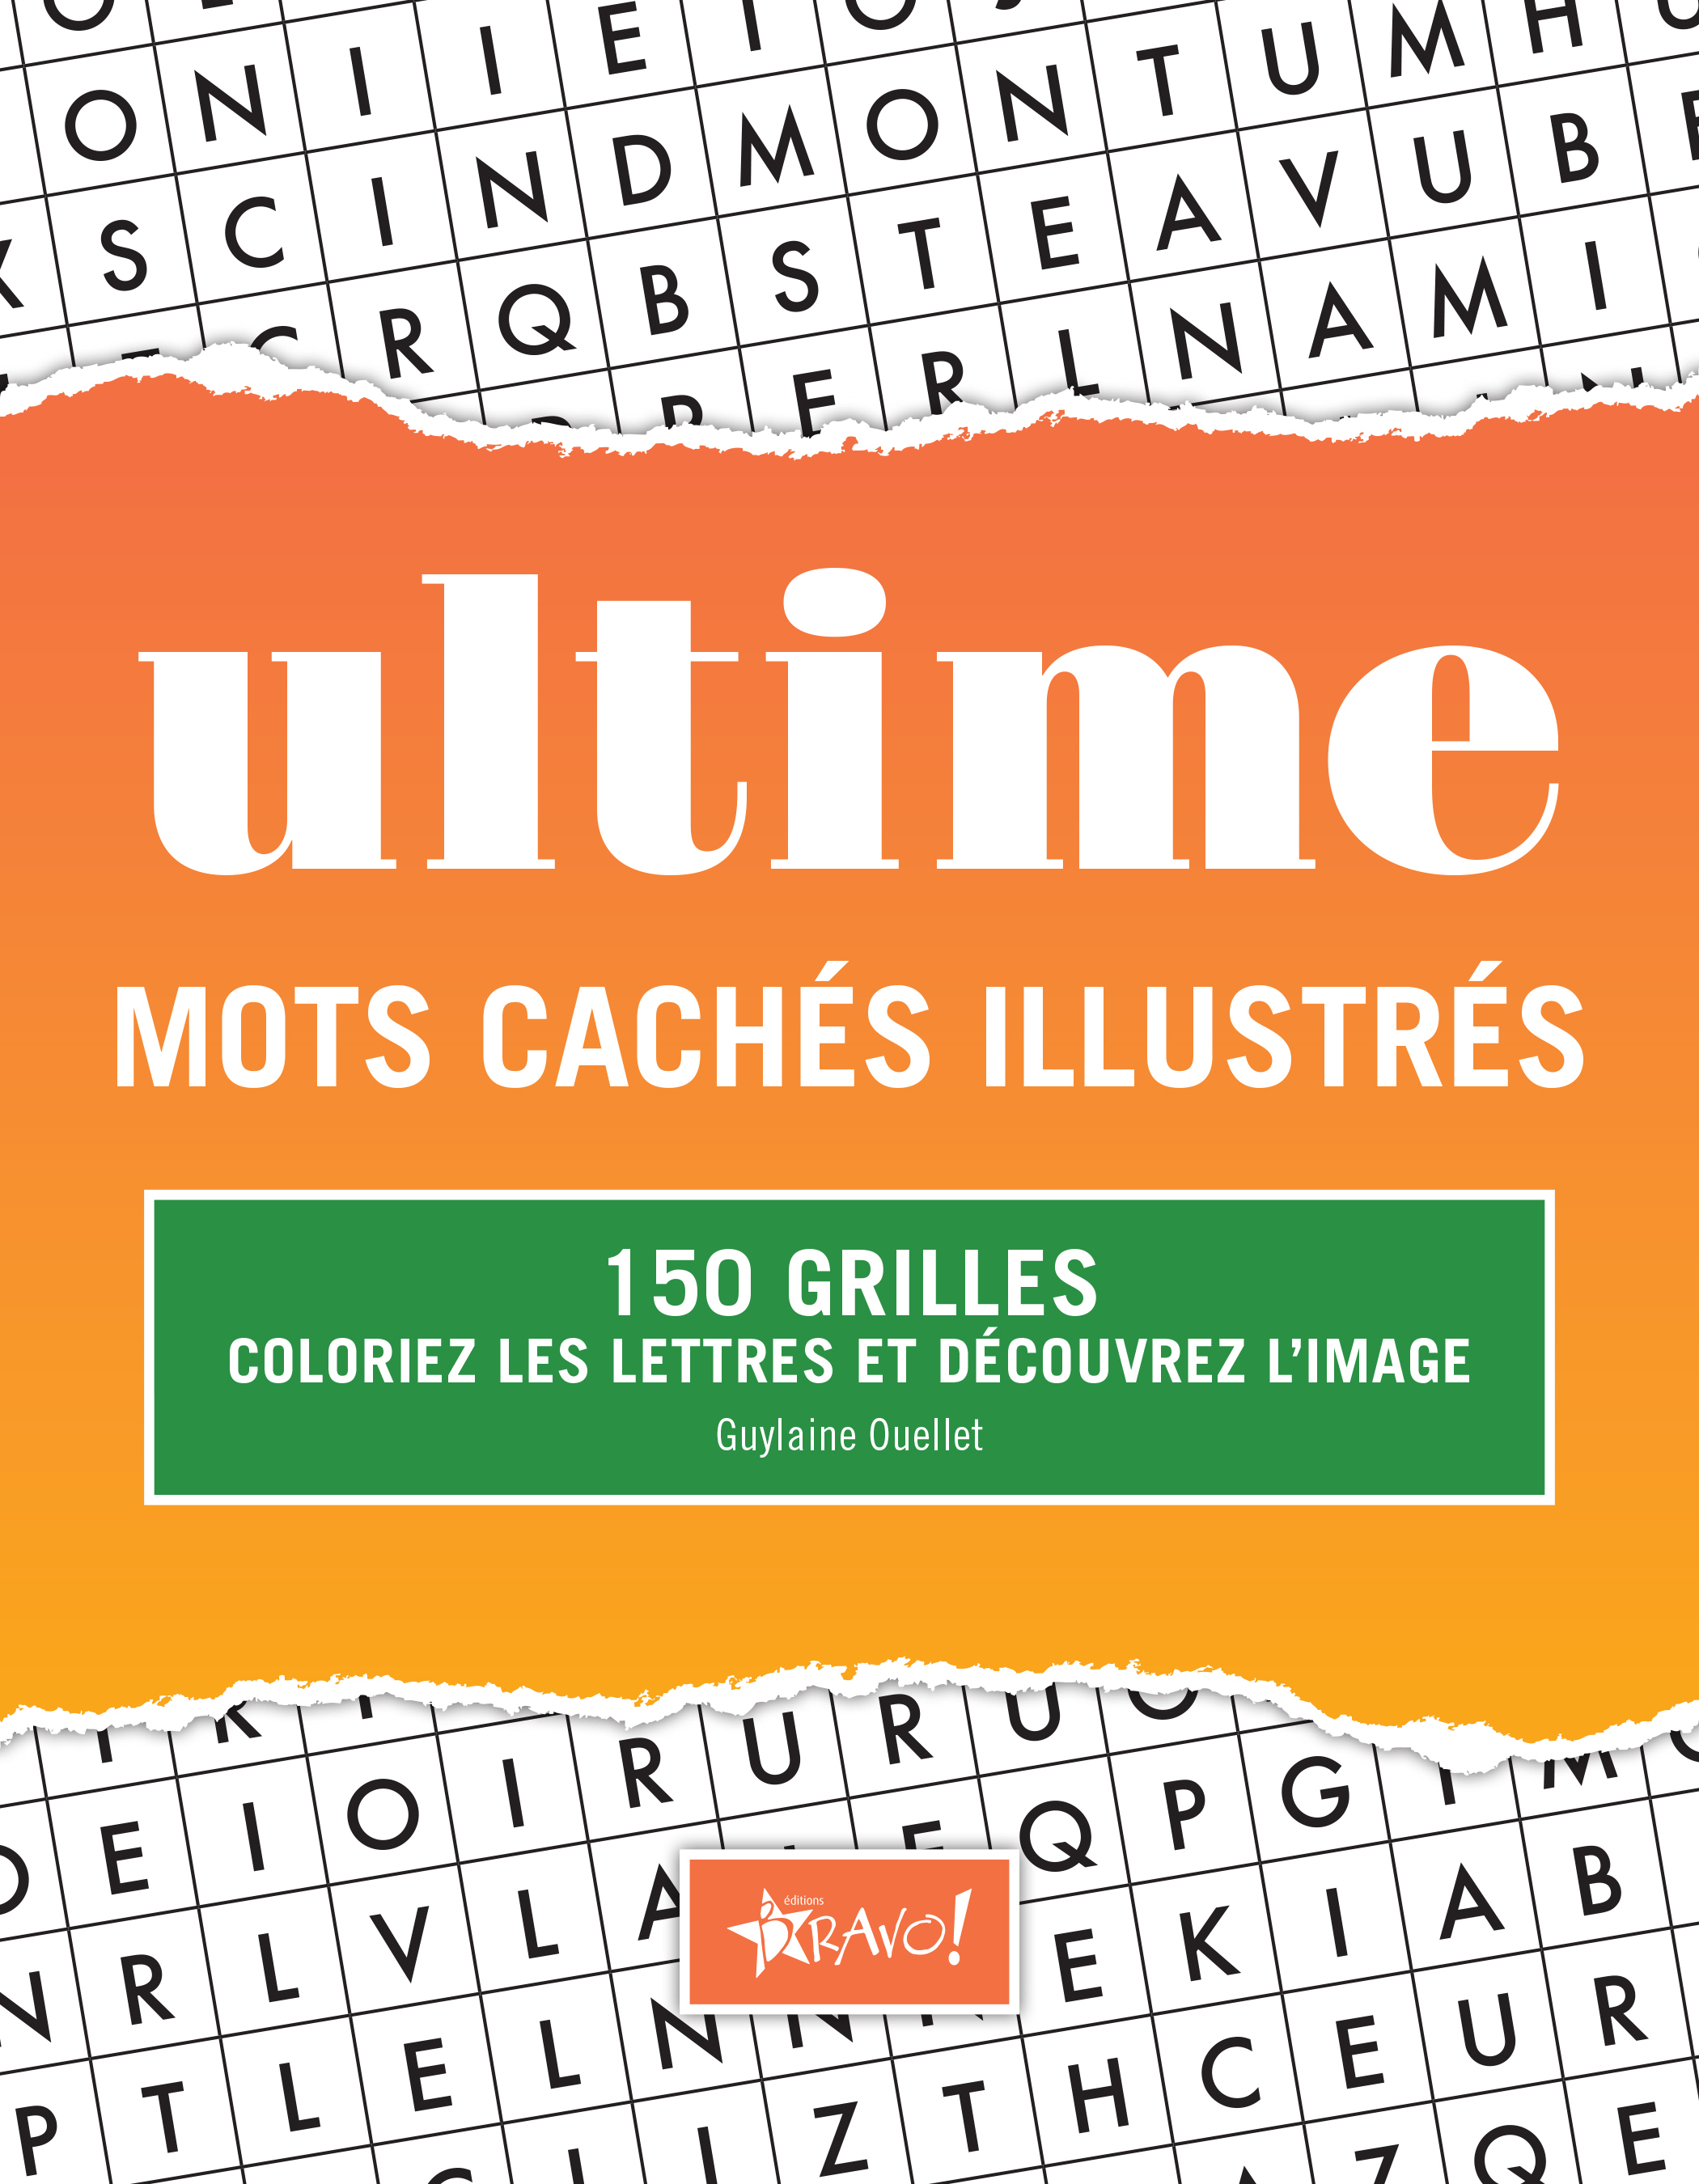 ULTIME MOTS CACHES ILLUSTRES